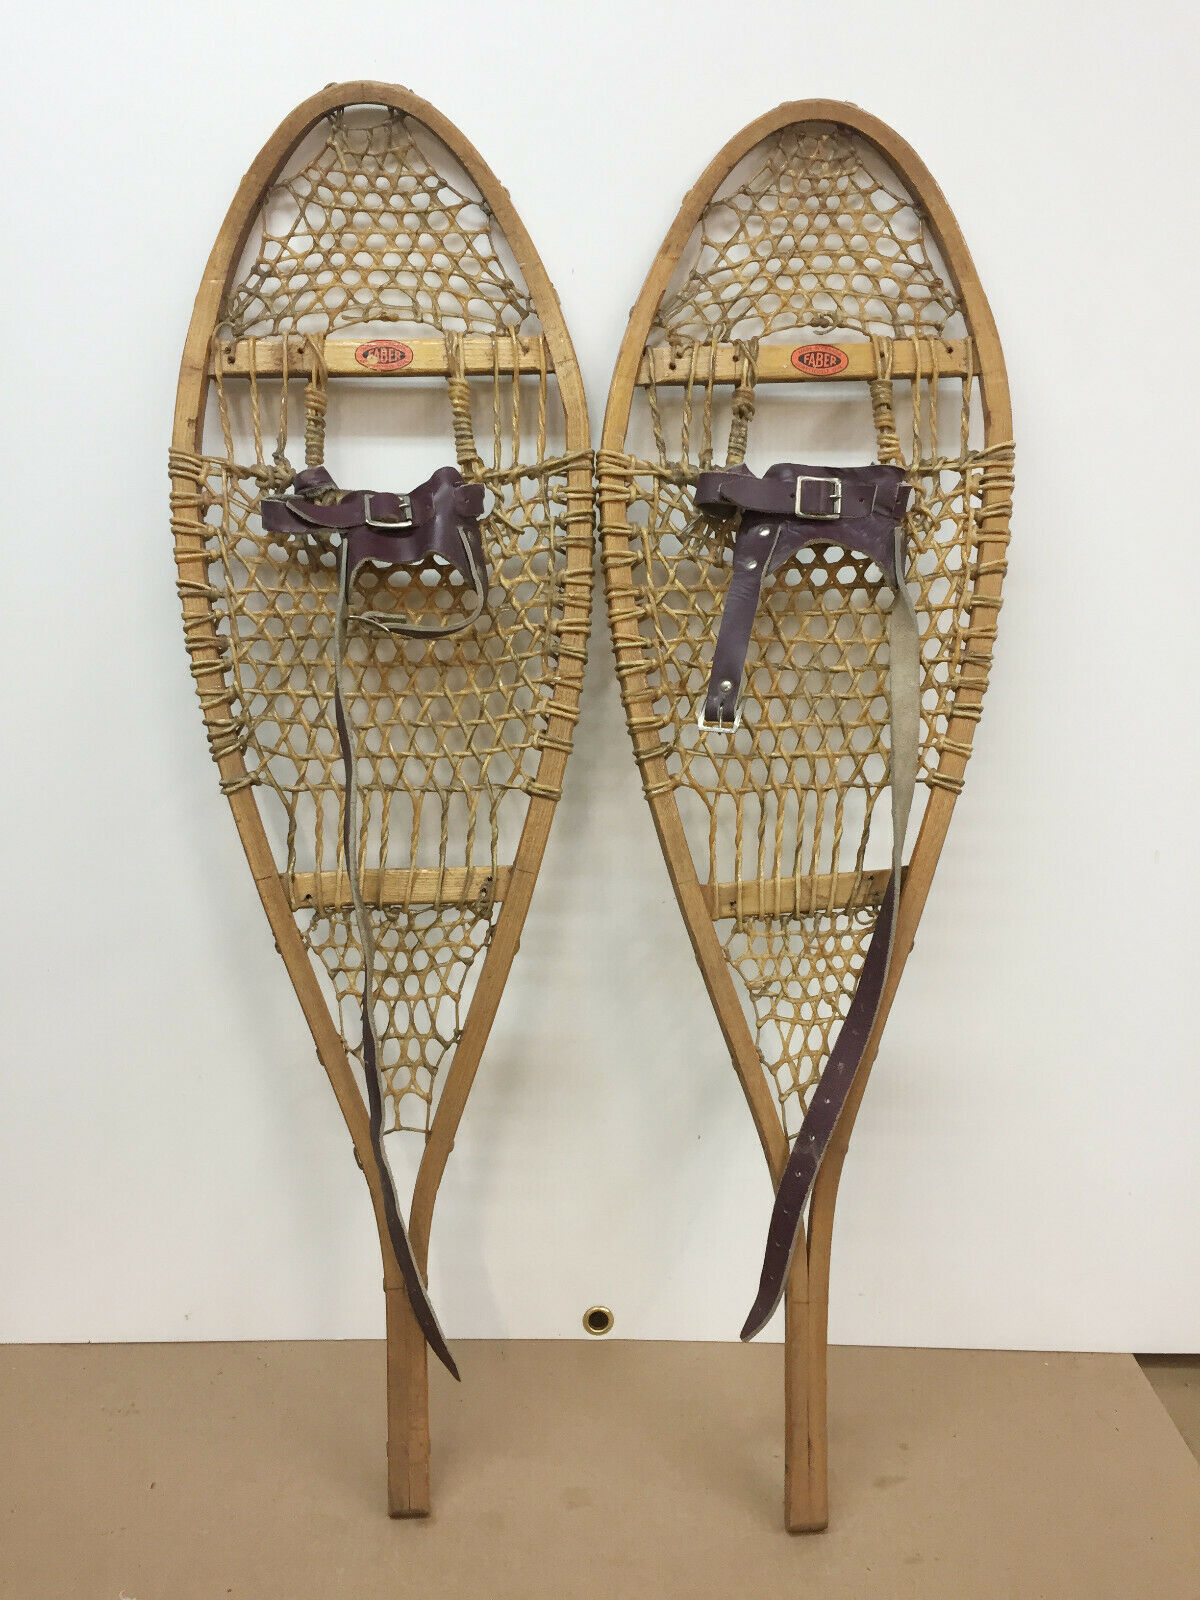 Antique  Vintage Indian Made Kid  ld FABER Snowshoes 11  X 36  Usable Or Decor  outlet